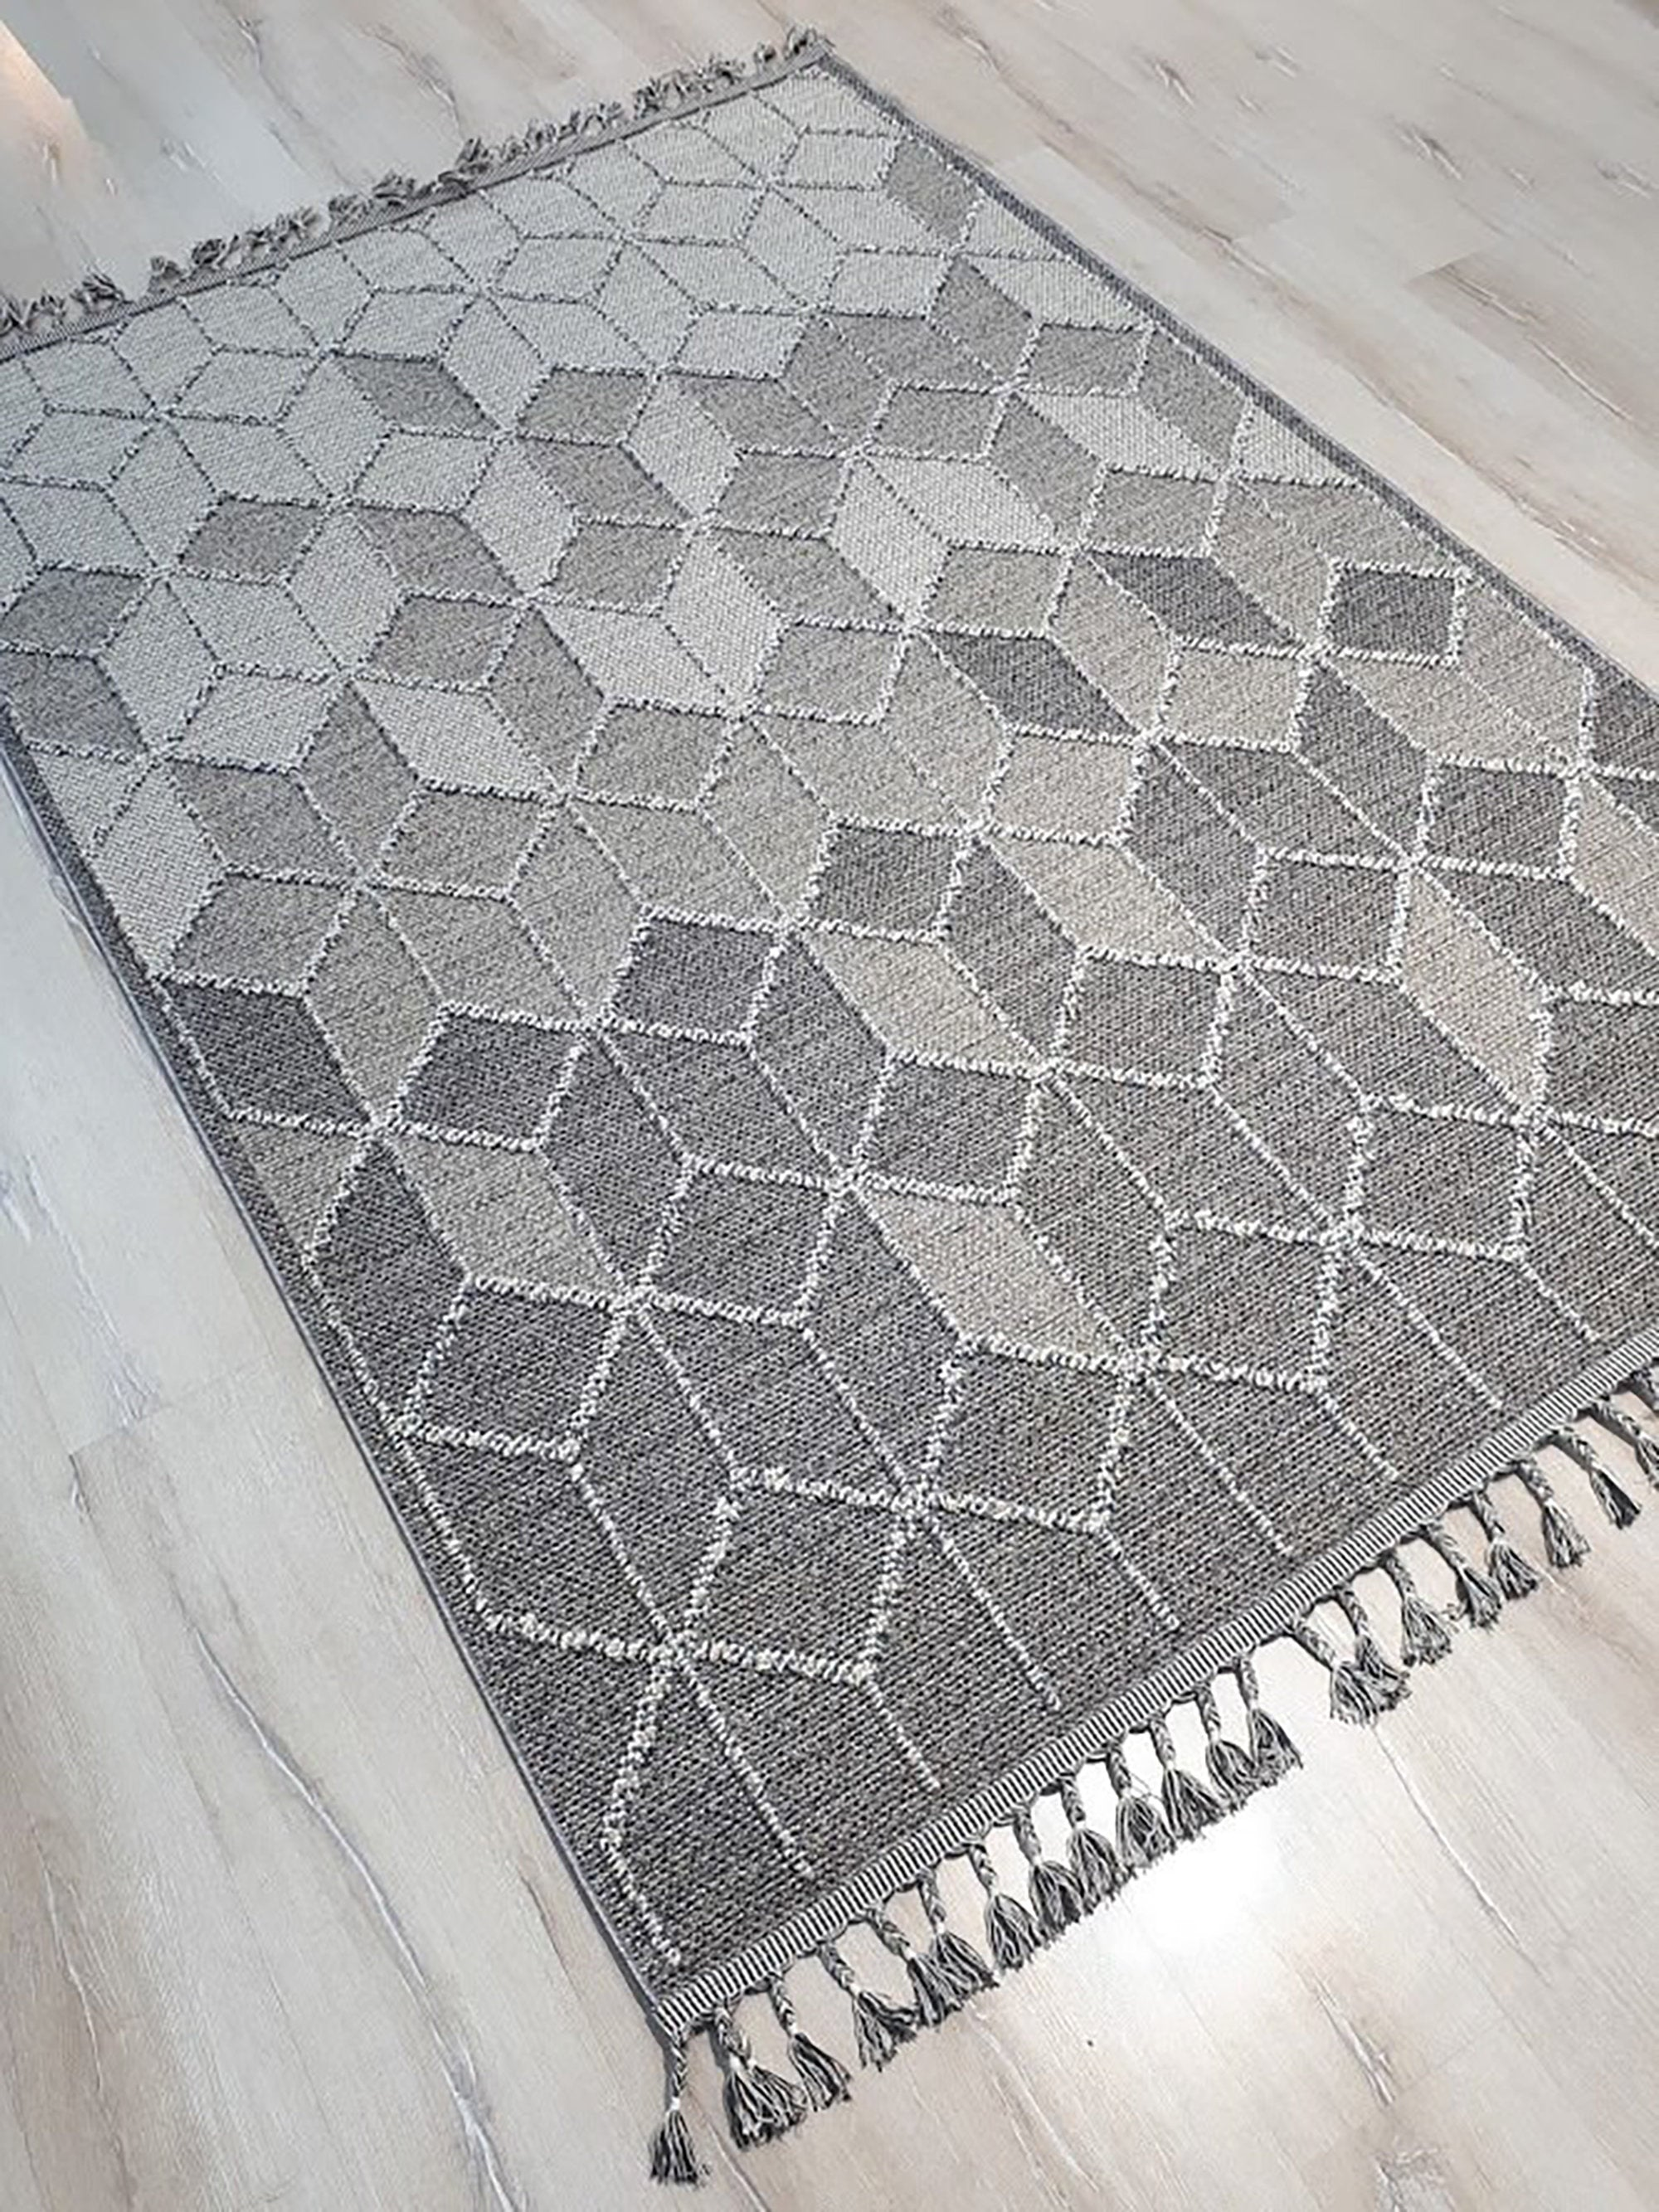 GRI | Kilim Rug, Flatweave, Geometric Modern Turkish Kilim Area Rug, Floor Decor Throw rug with Tassels, Textured, Lattice, Light Gray, Grey